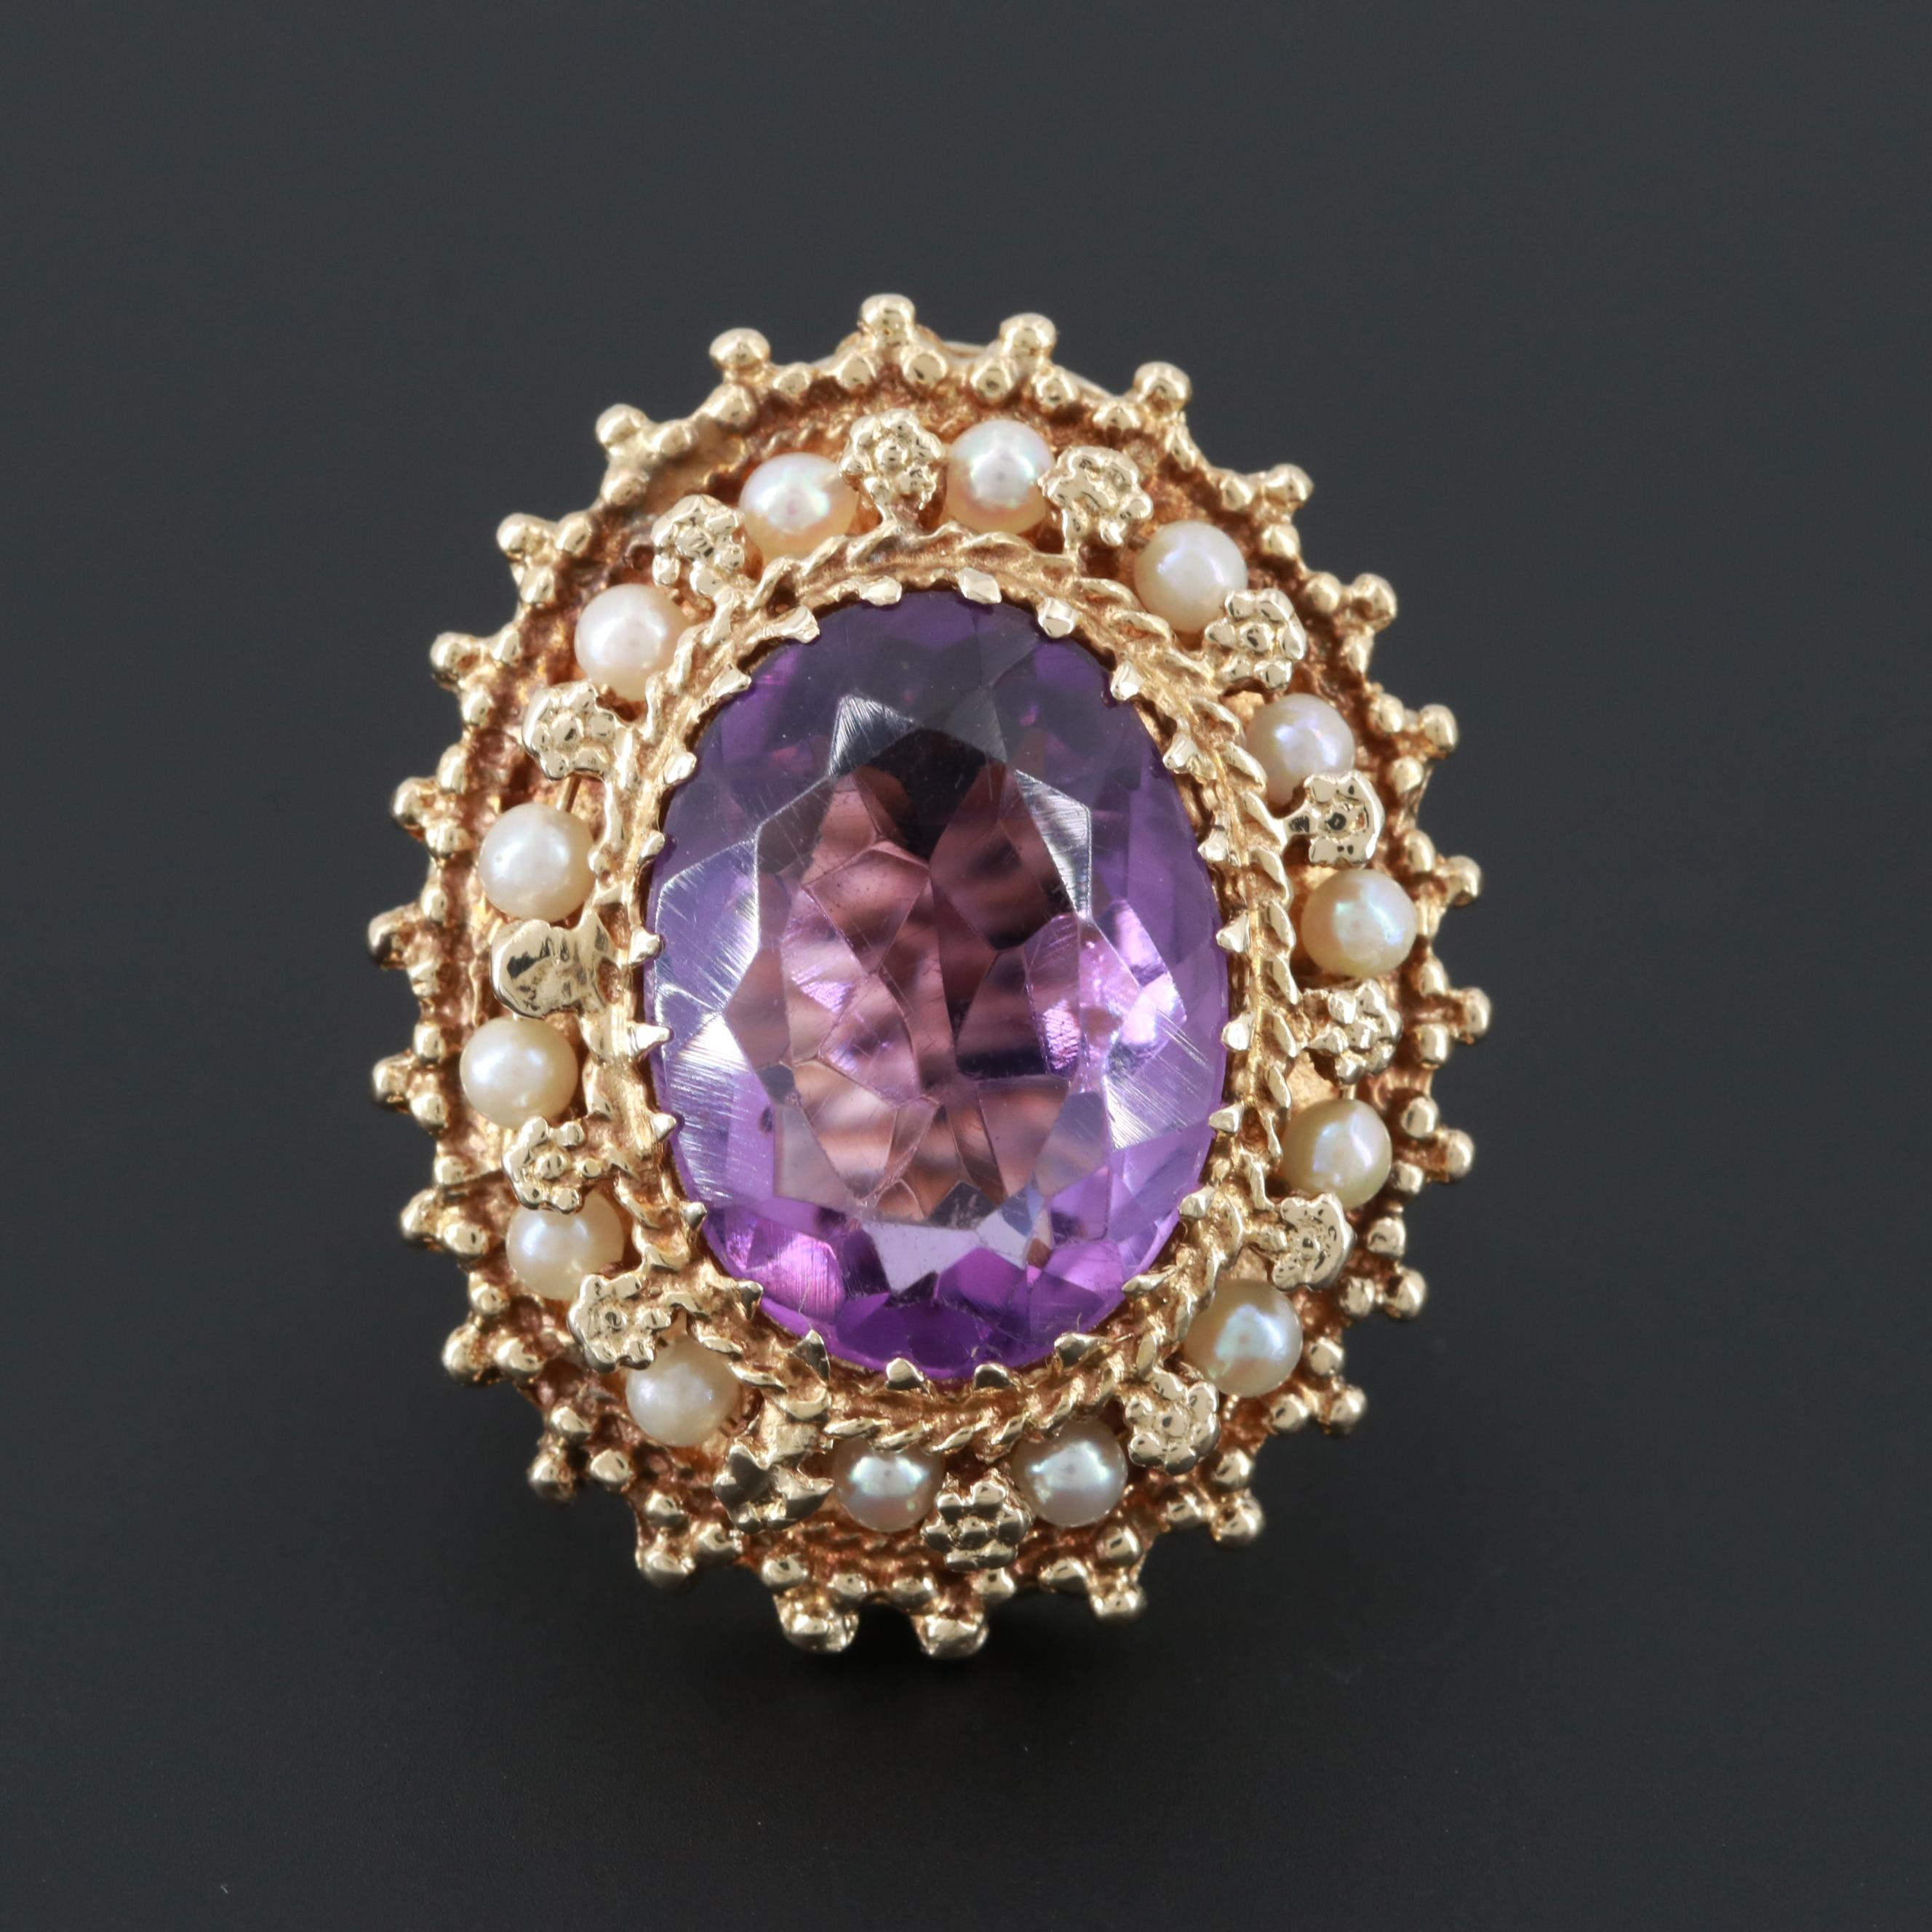 14K Yellow Gold Amethyst and Cultured Pearl Filigree Ring